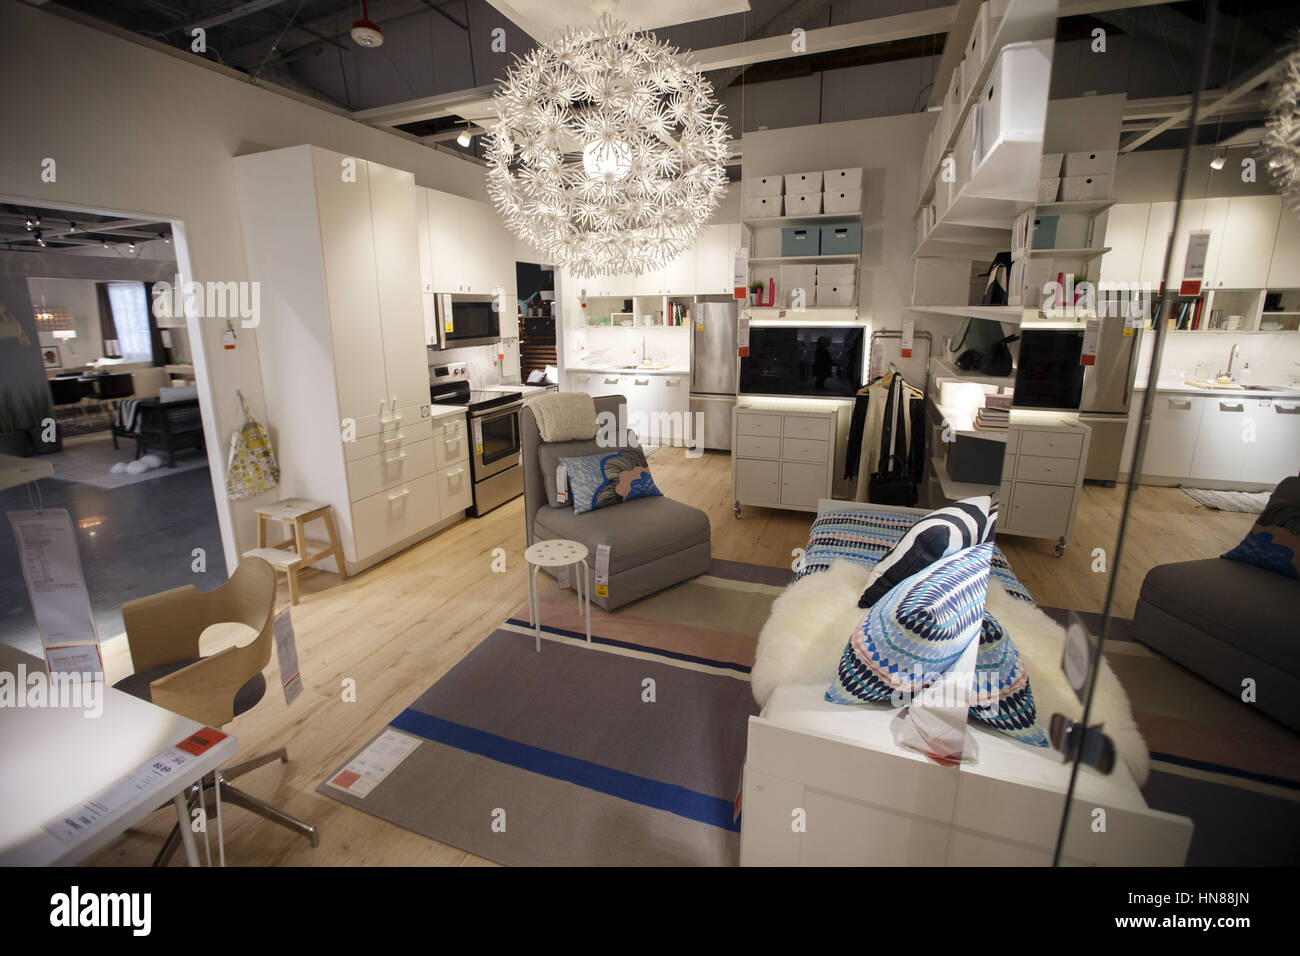 Beau Burbank, CA, USA. 1st Feb, 2017. A Display For A 270 Square Foot Living  Space During A Preview Of The New IKEA Burbank Home Furnishings Store On  Wednesday, ...